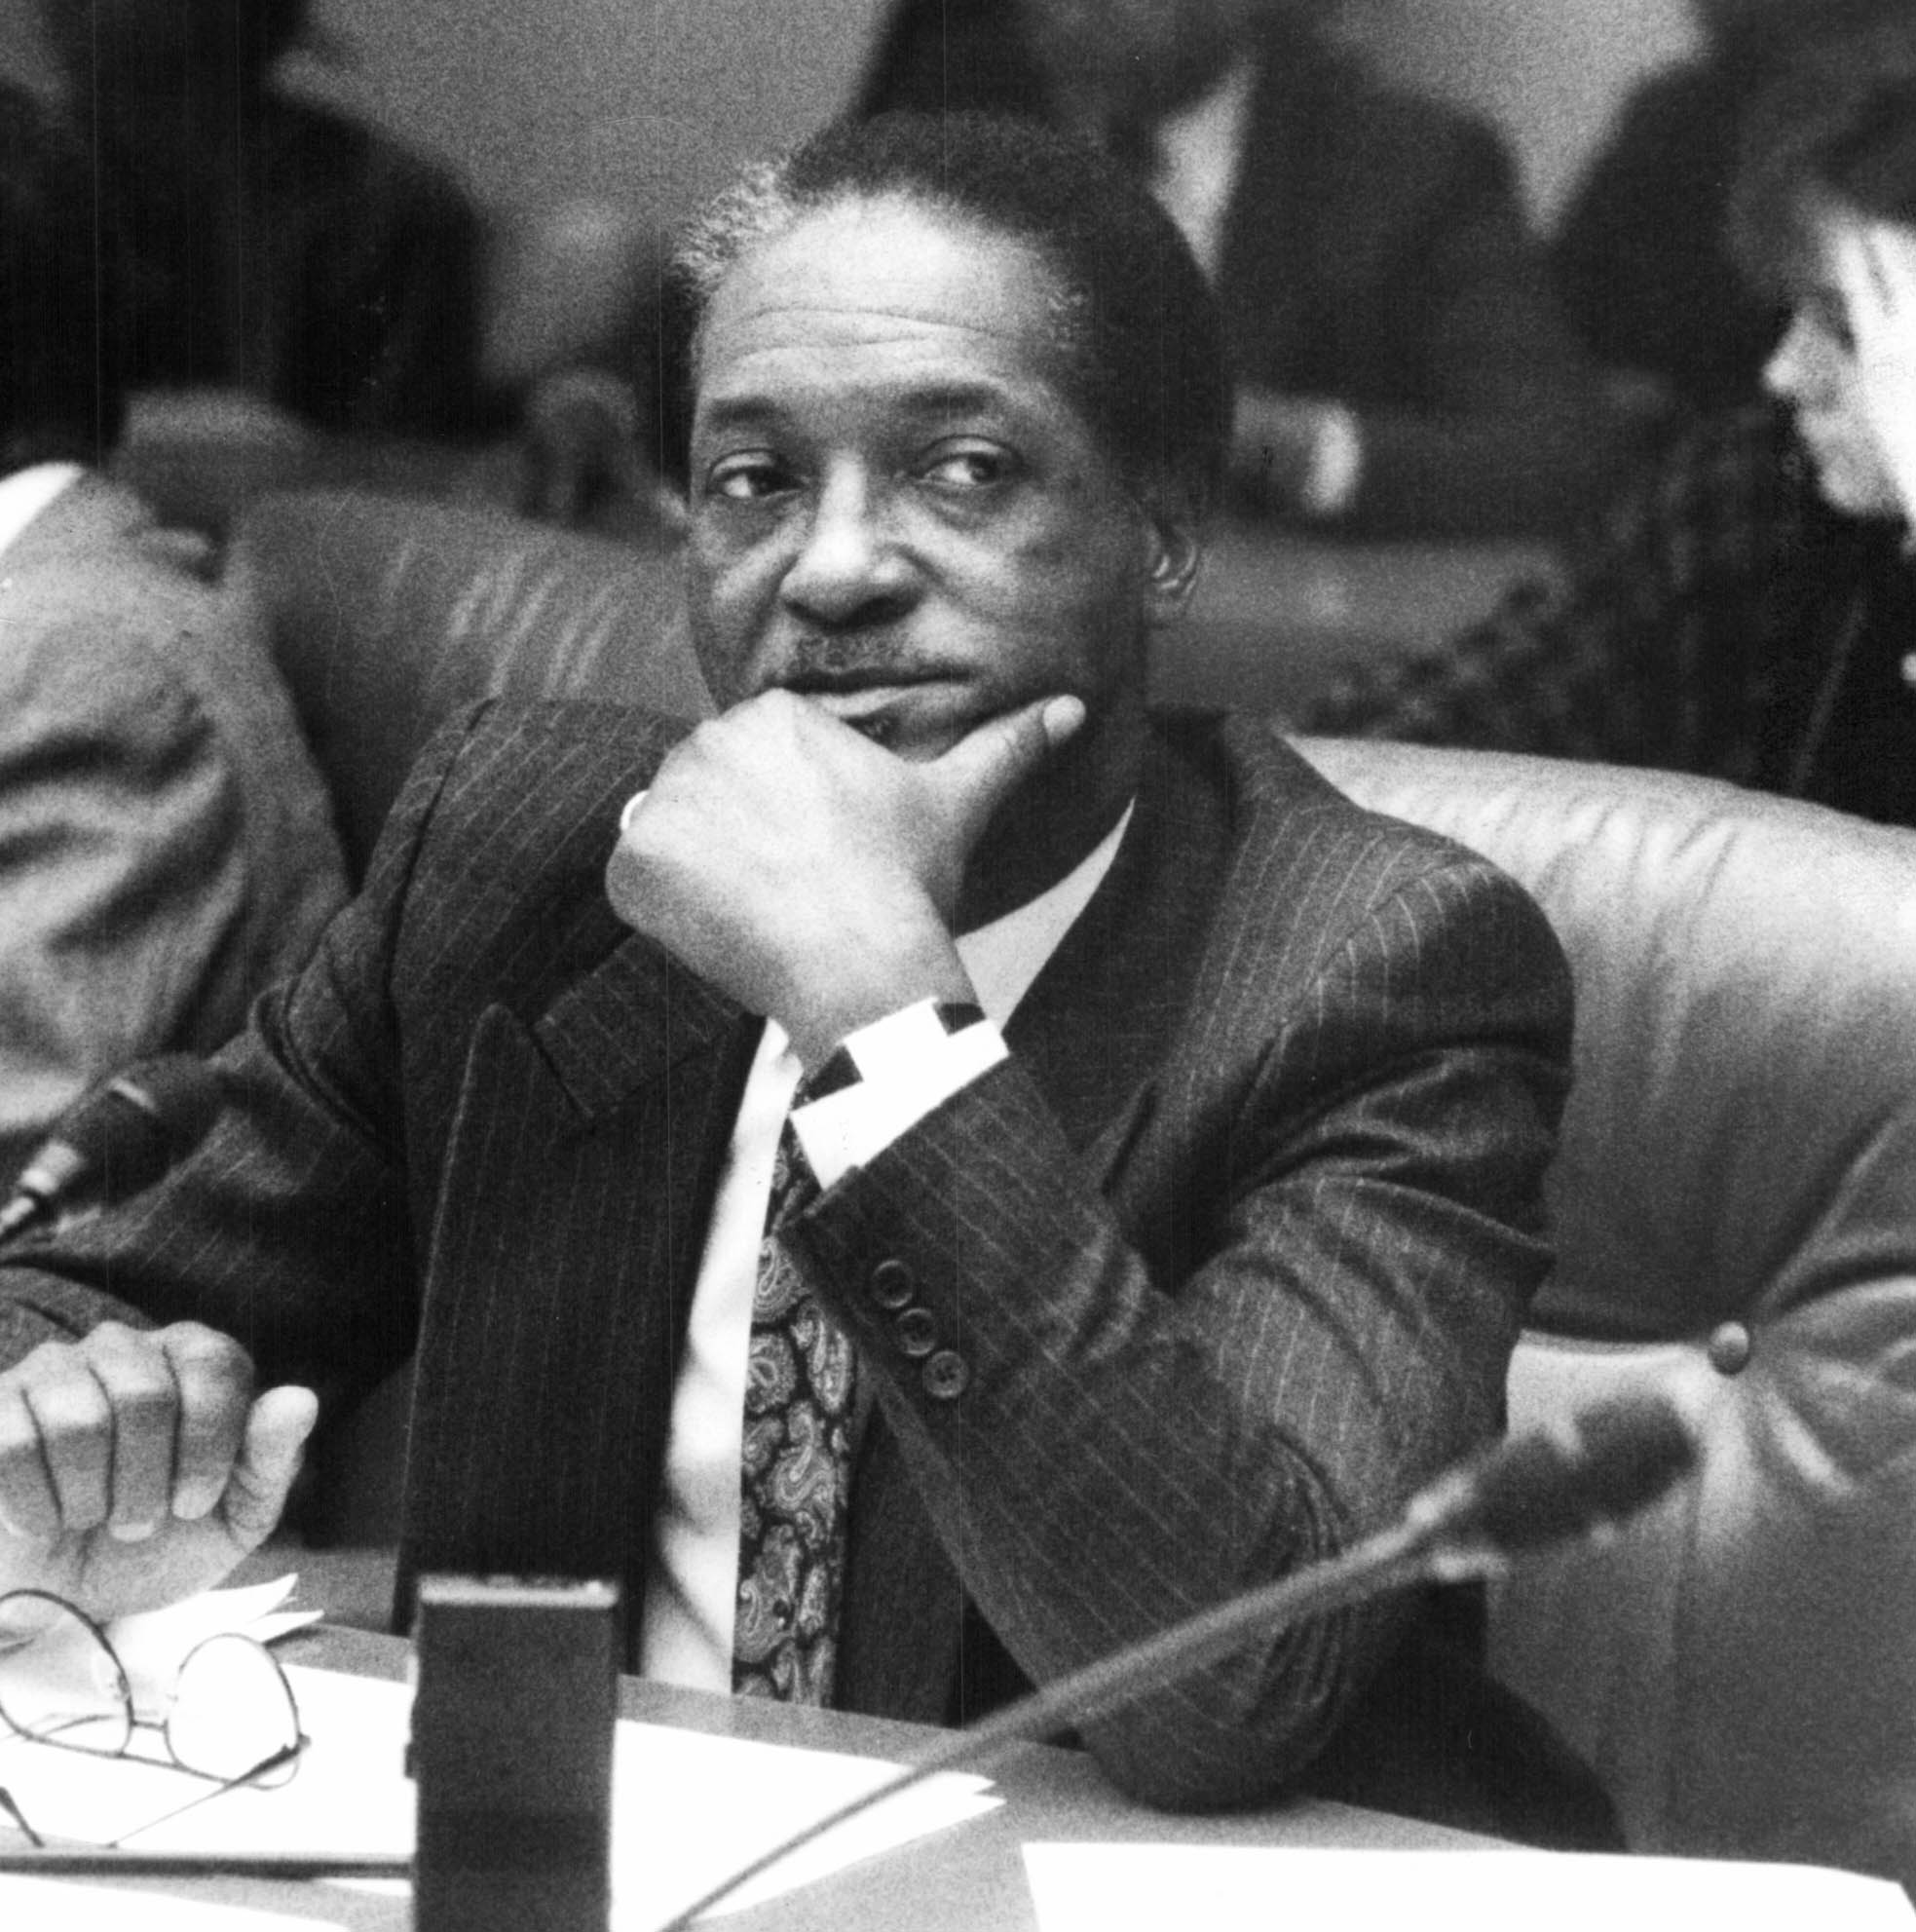 Groman began to suspect that the corruption at the Detroit Police Department went as high as Gil Hill, who oversaw the homicide department. Hill maintained that he did not tip off the Curry drug organization. But Johnny Curry later admitted to regularly bribing Hill.  Courtesy of the Detroit Free Press.